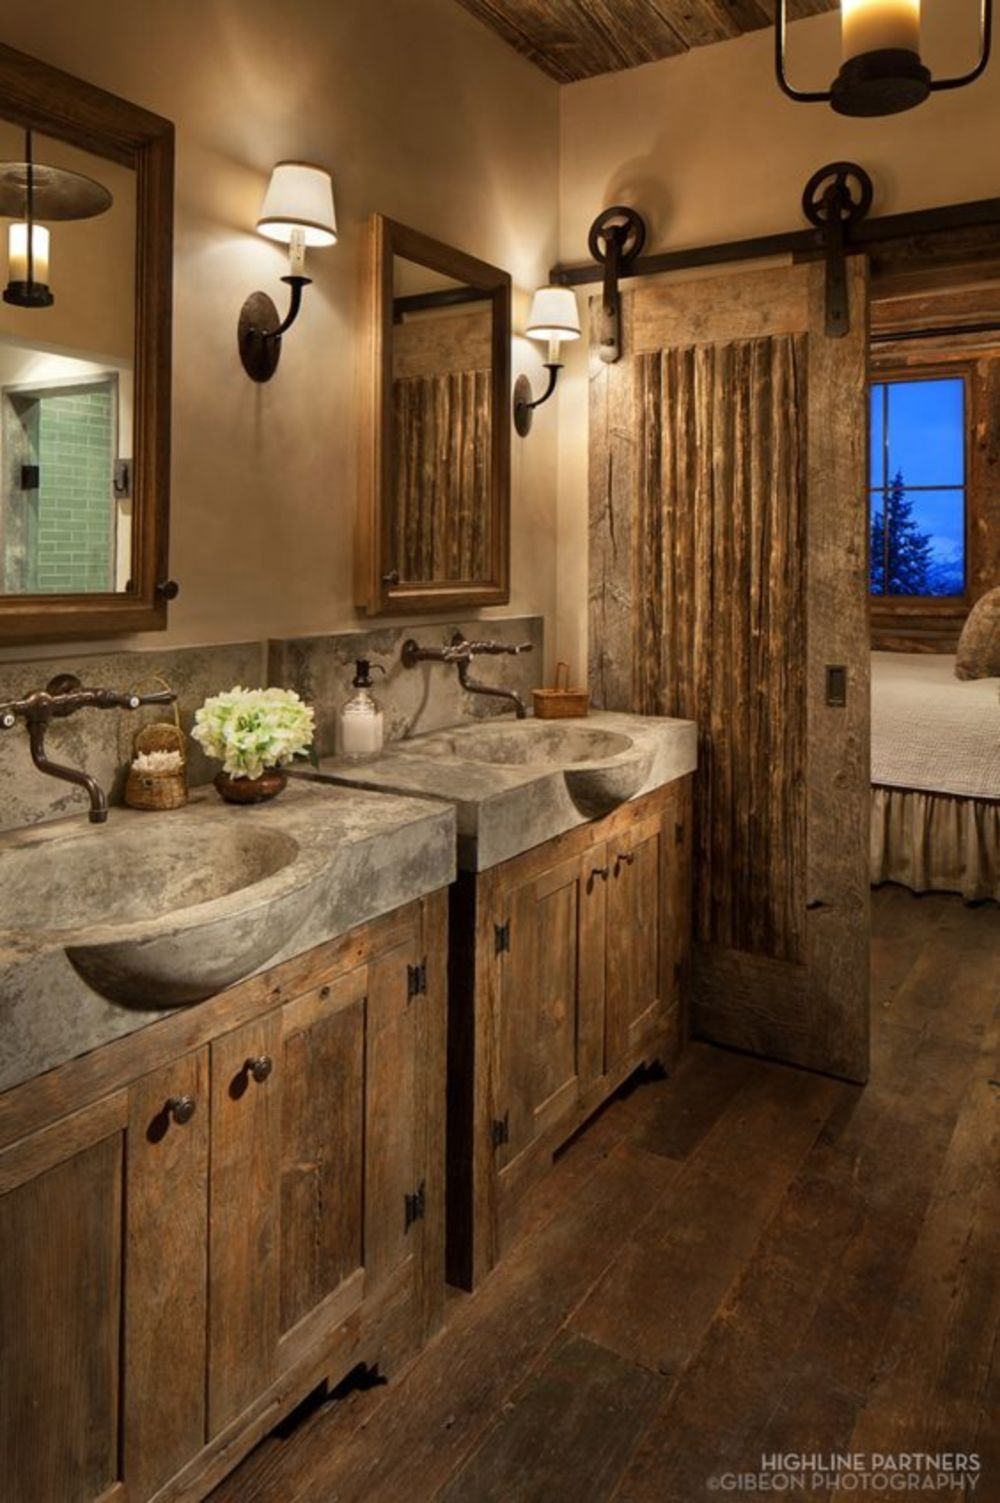 Merveilleux Cool 46 Wonderful Rustic Bathroom Decorating Ideas  Https://homedecort.com/2017